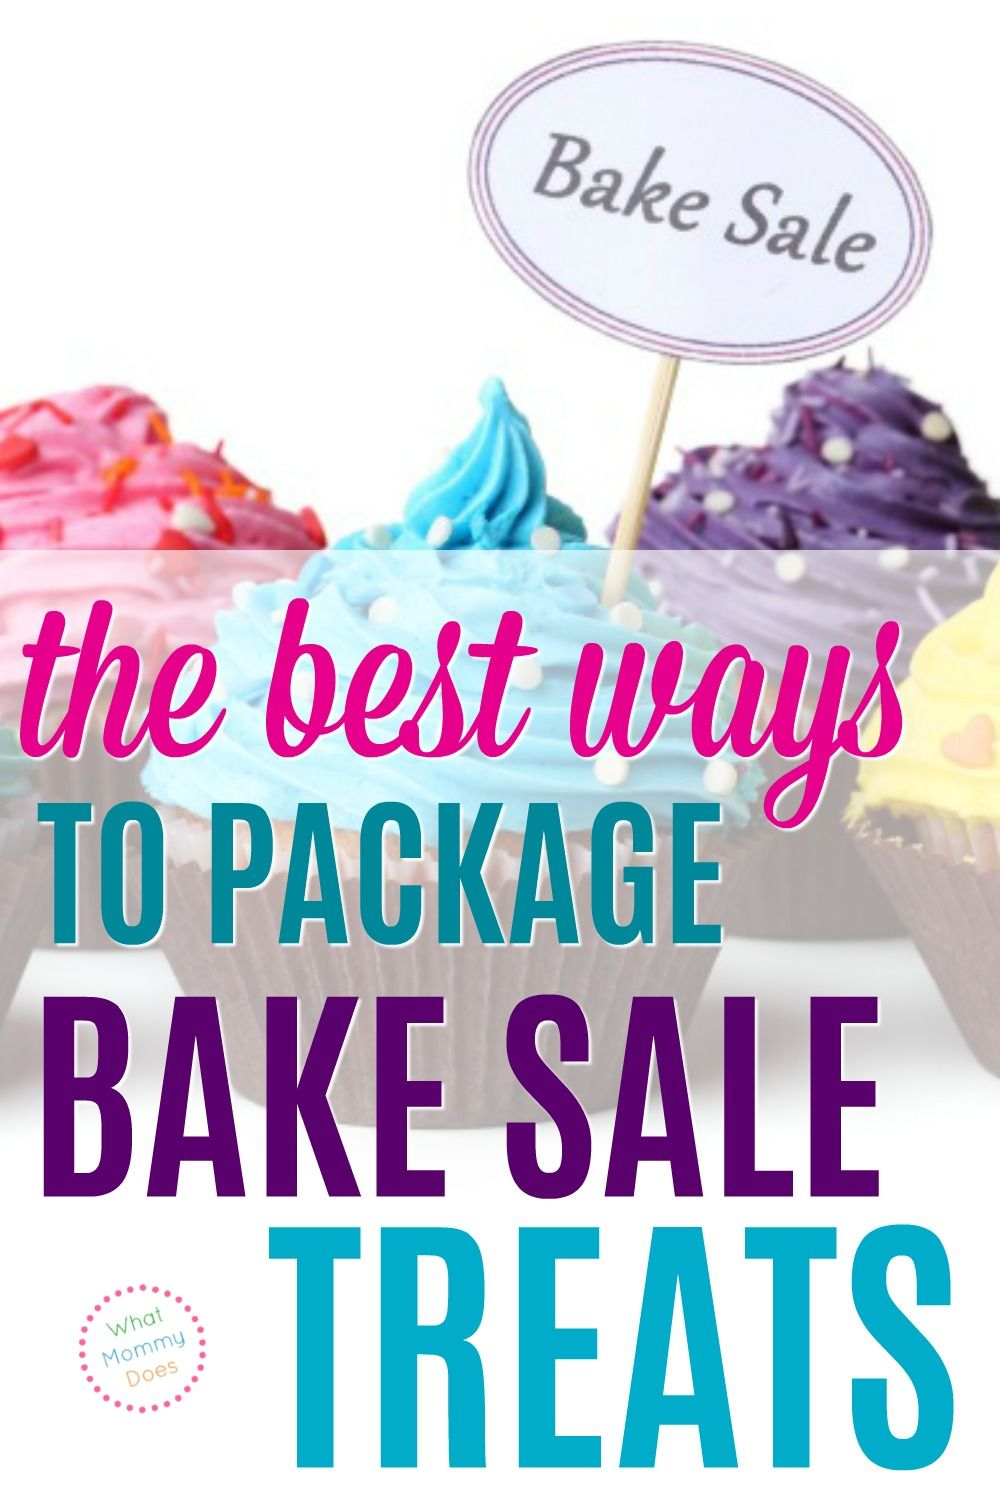 25 Bake Sale Worthy Treats – Sell Out Recipe Ideas for Your Next Fundraiser